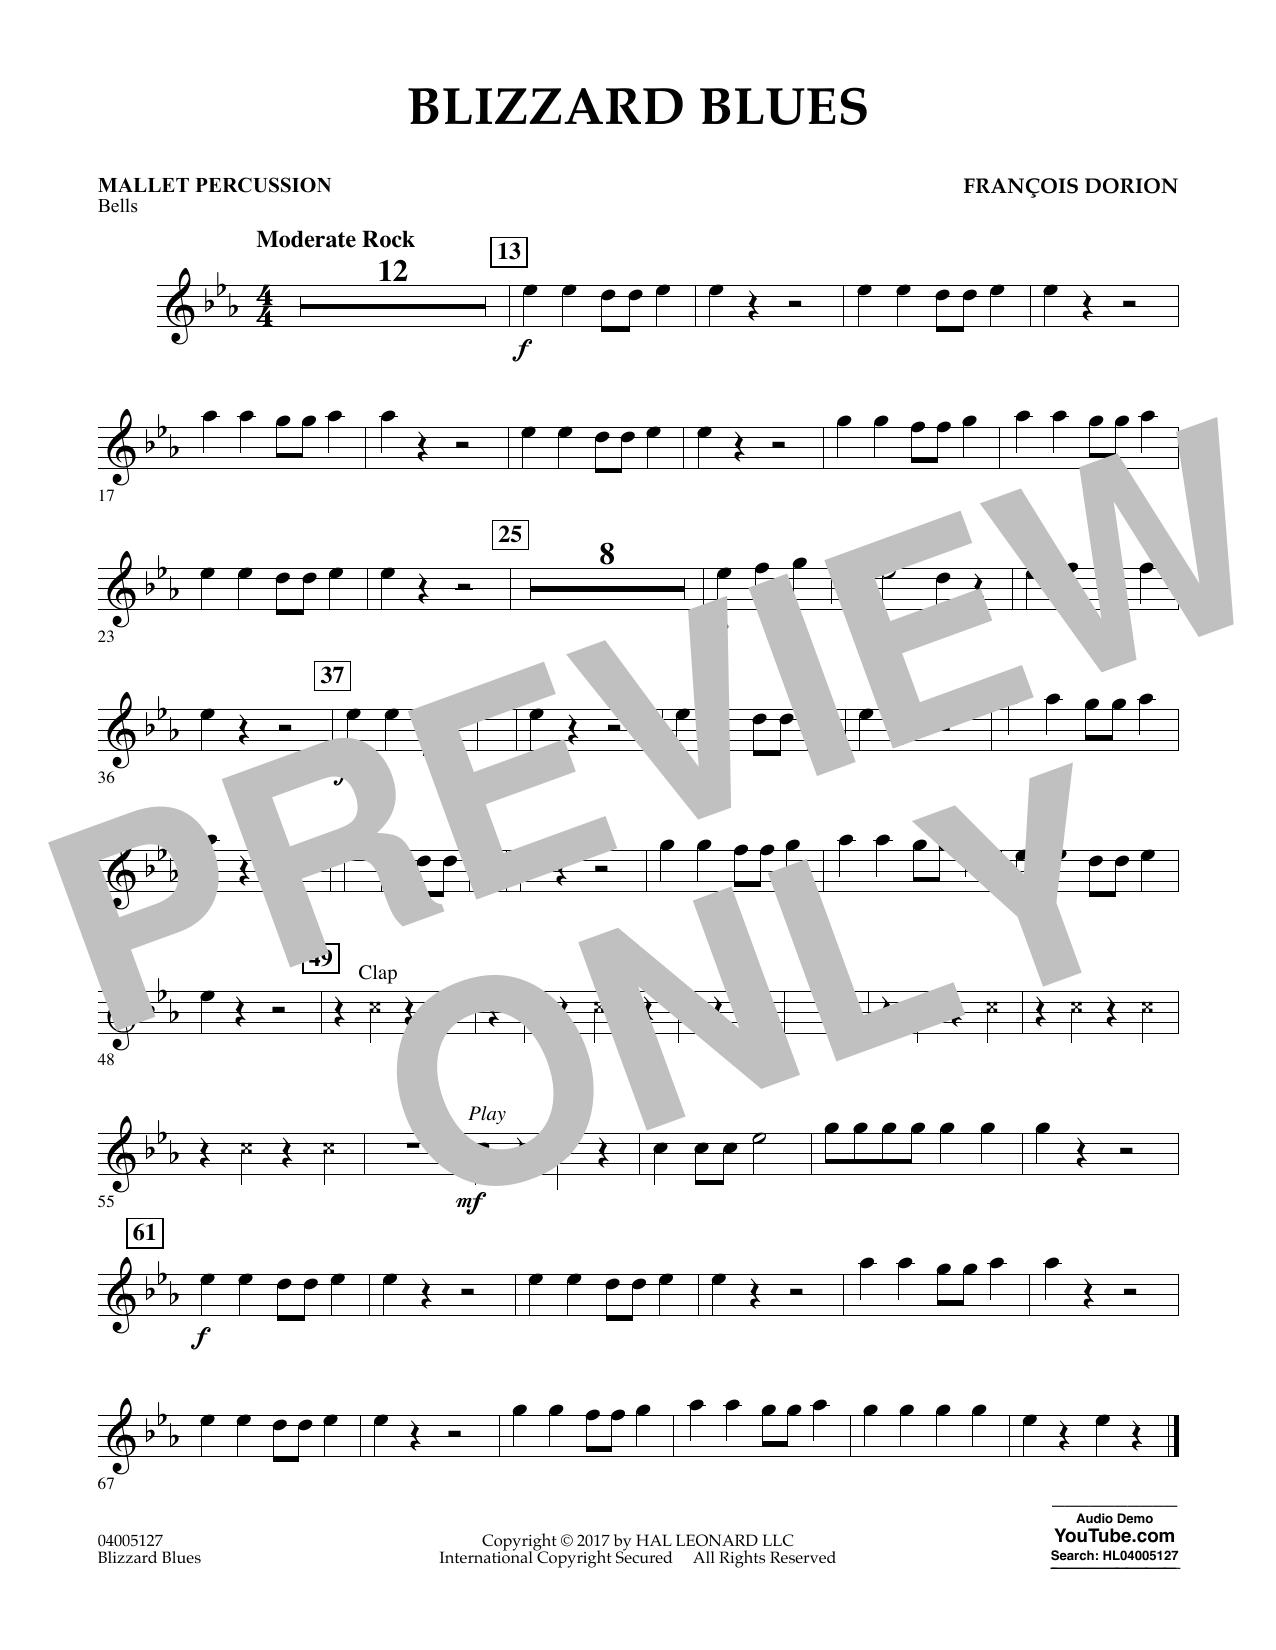 Francois Dorion Blizzard Blues - Mallet Percussion sheet music notes and chords. Download Printable PDF.